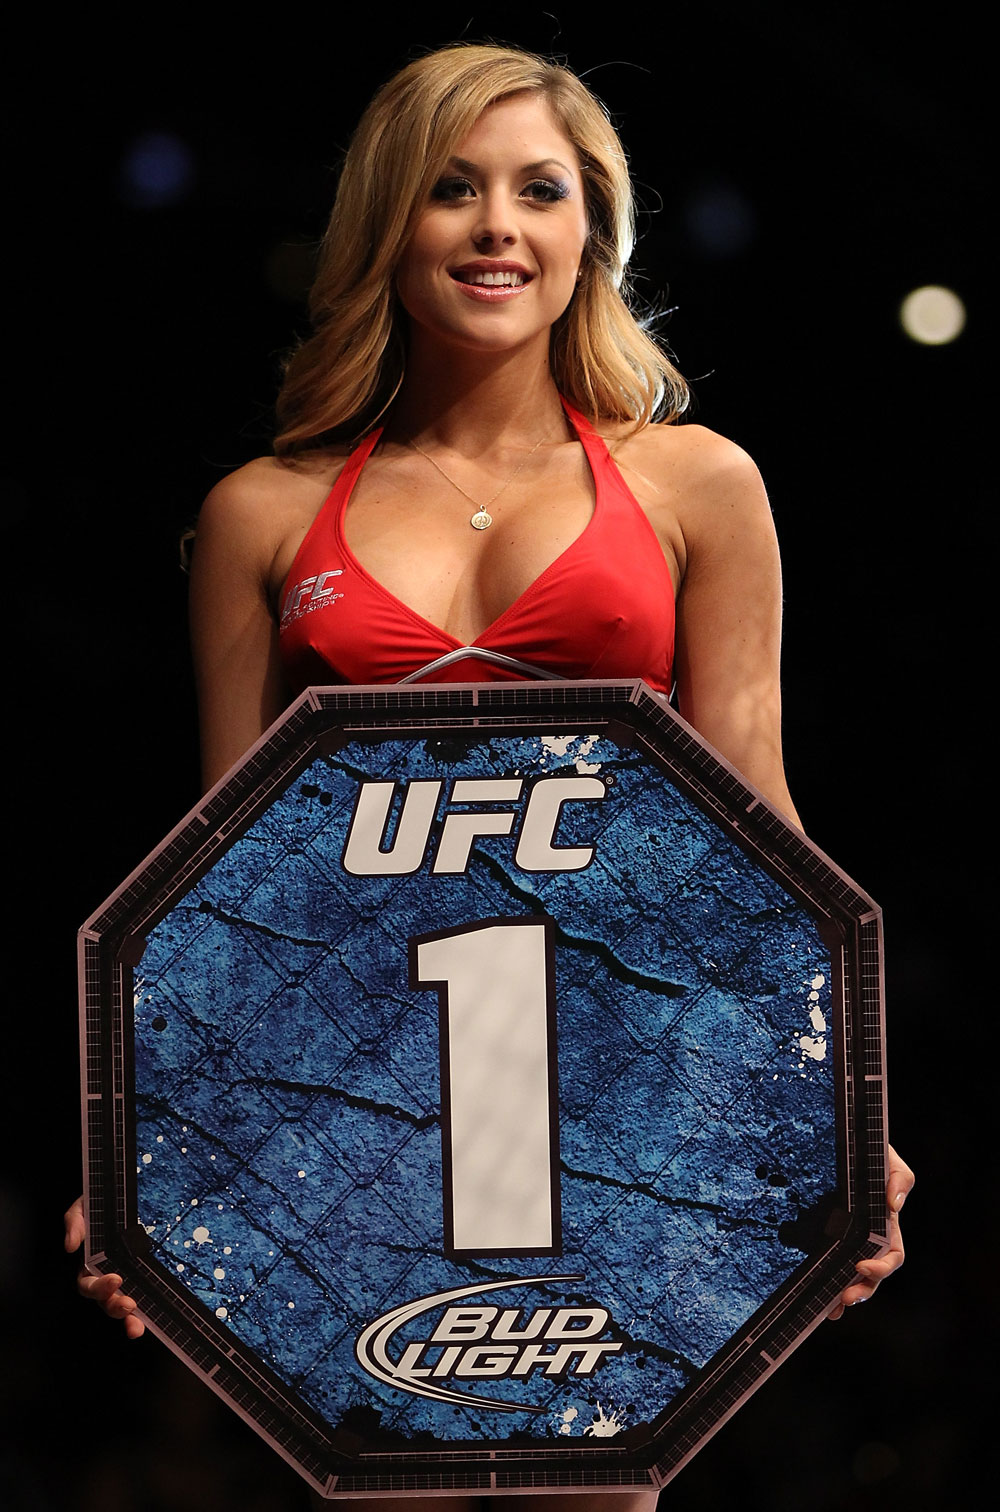 http://media.ufc.tv/photo_galleries/UFConFX_Johnson_v_McCall/13_UFConFX_02.jpg